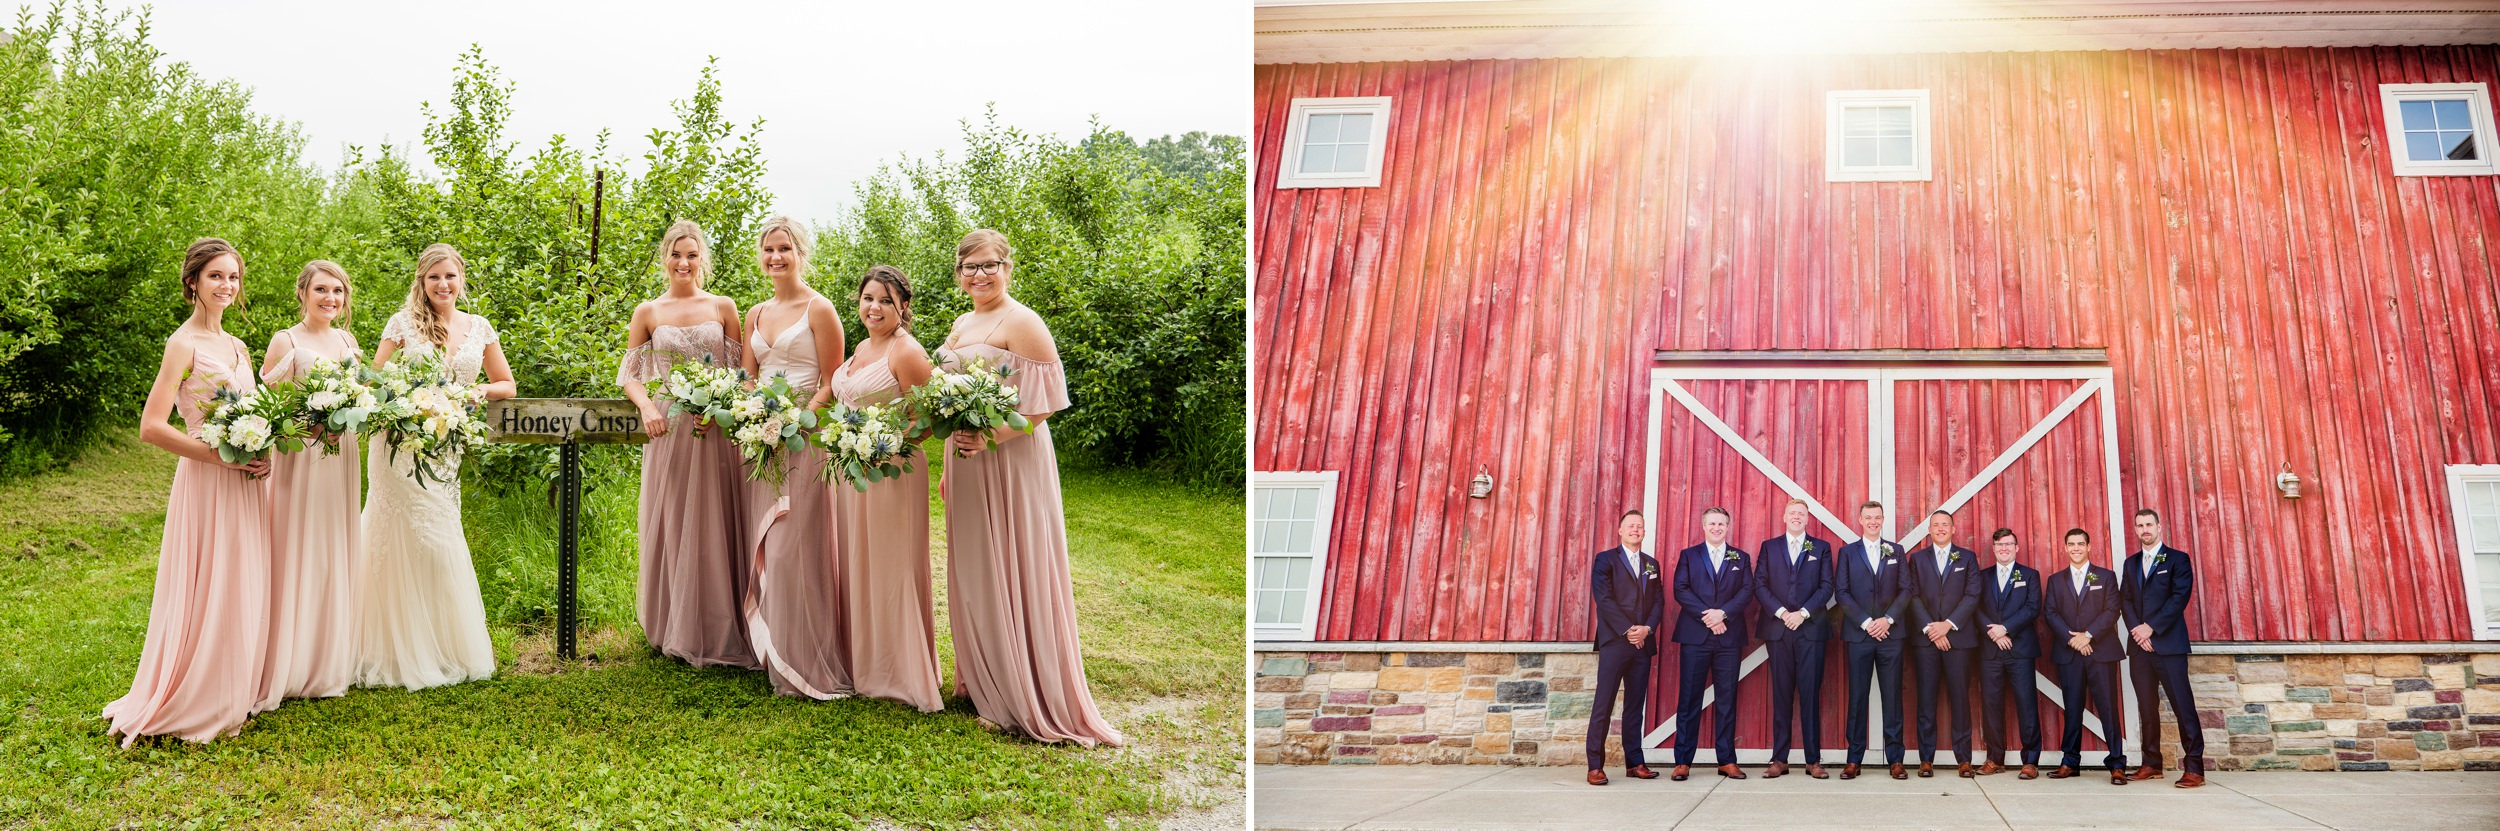 Bridesmaid and groomsmen photos at County Line Orchard.